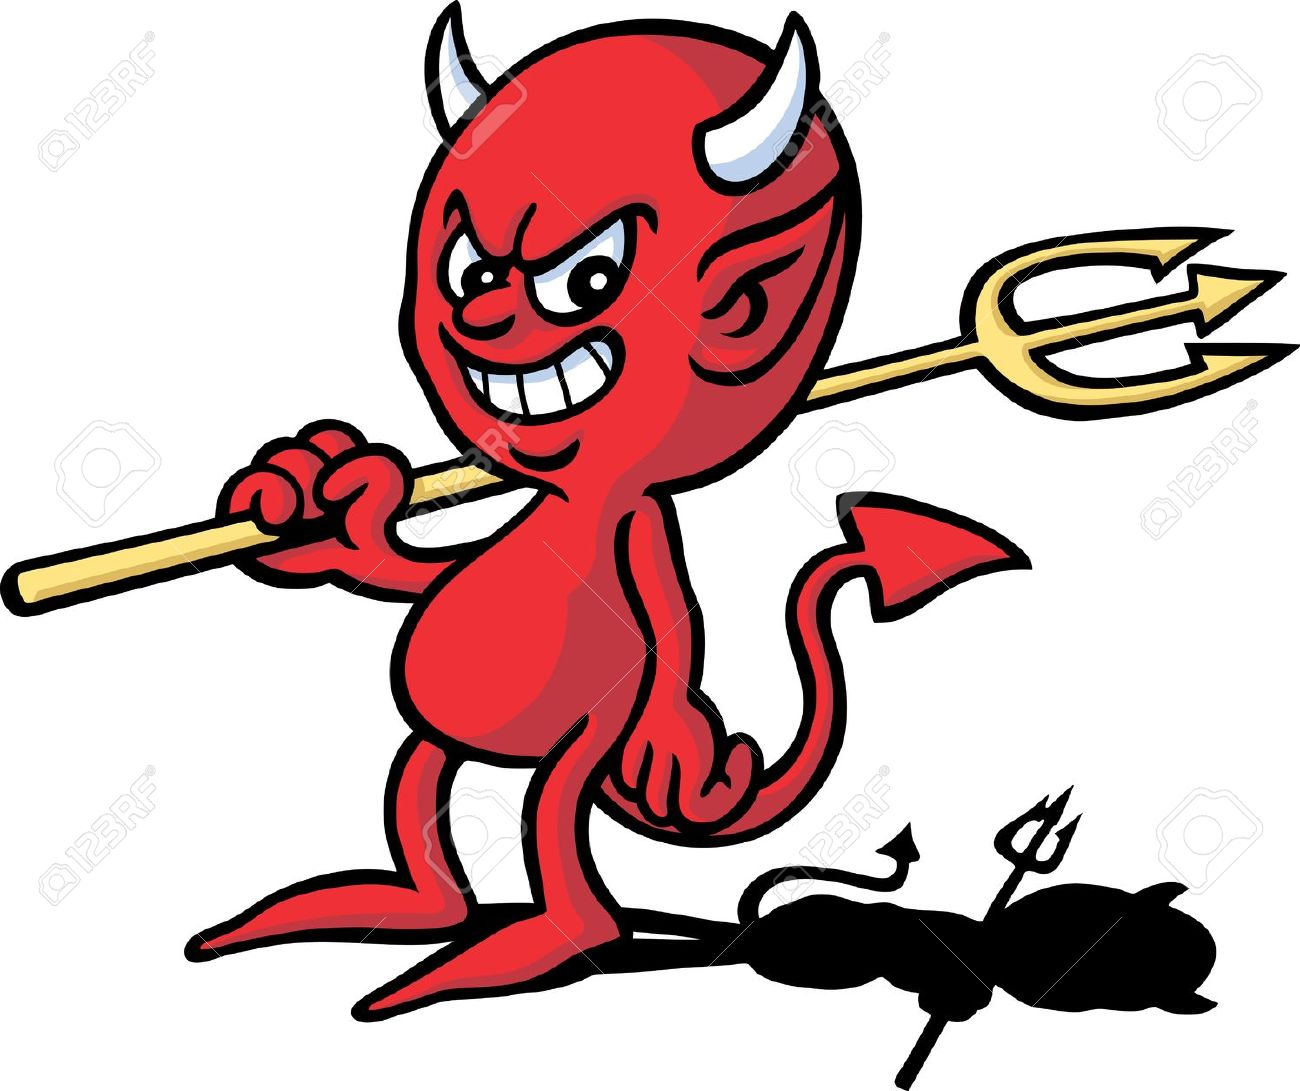 Devil clipart #12, Download drawings